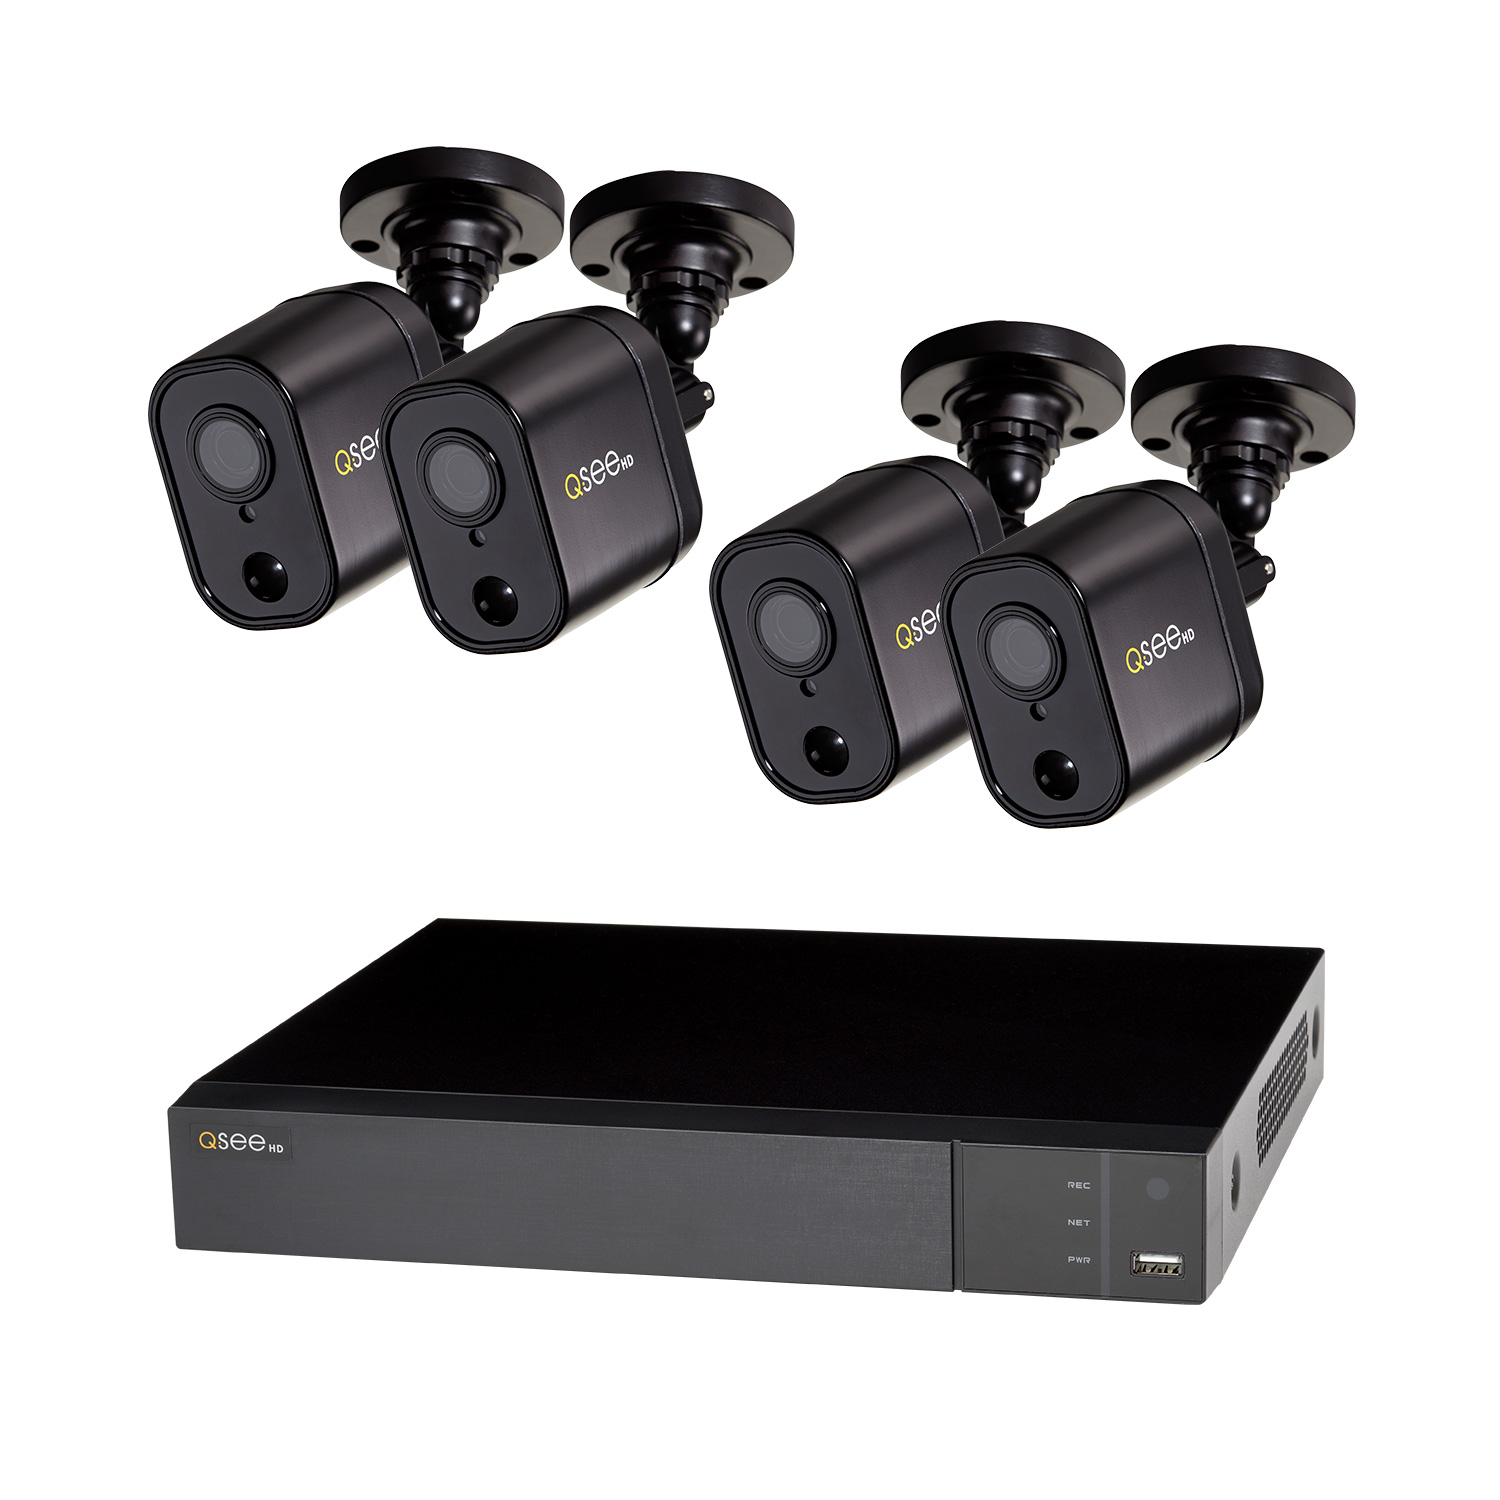 Q-See 4 Channel HD DVR Security System with 4 -1080p PIR Bullet Cameras, 1TB HDD